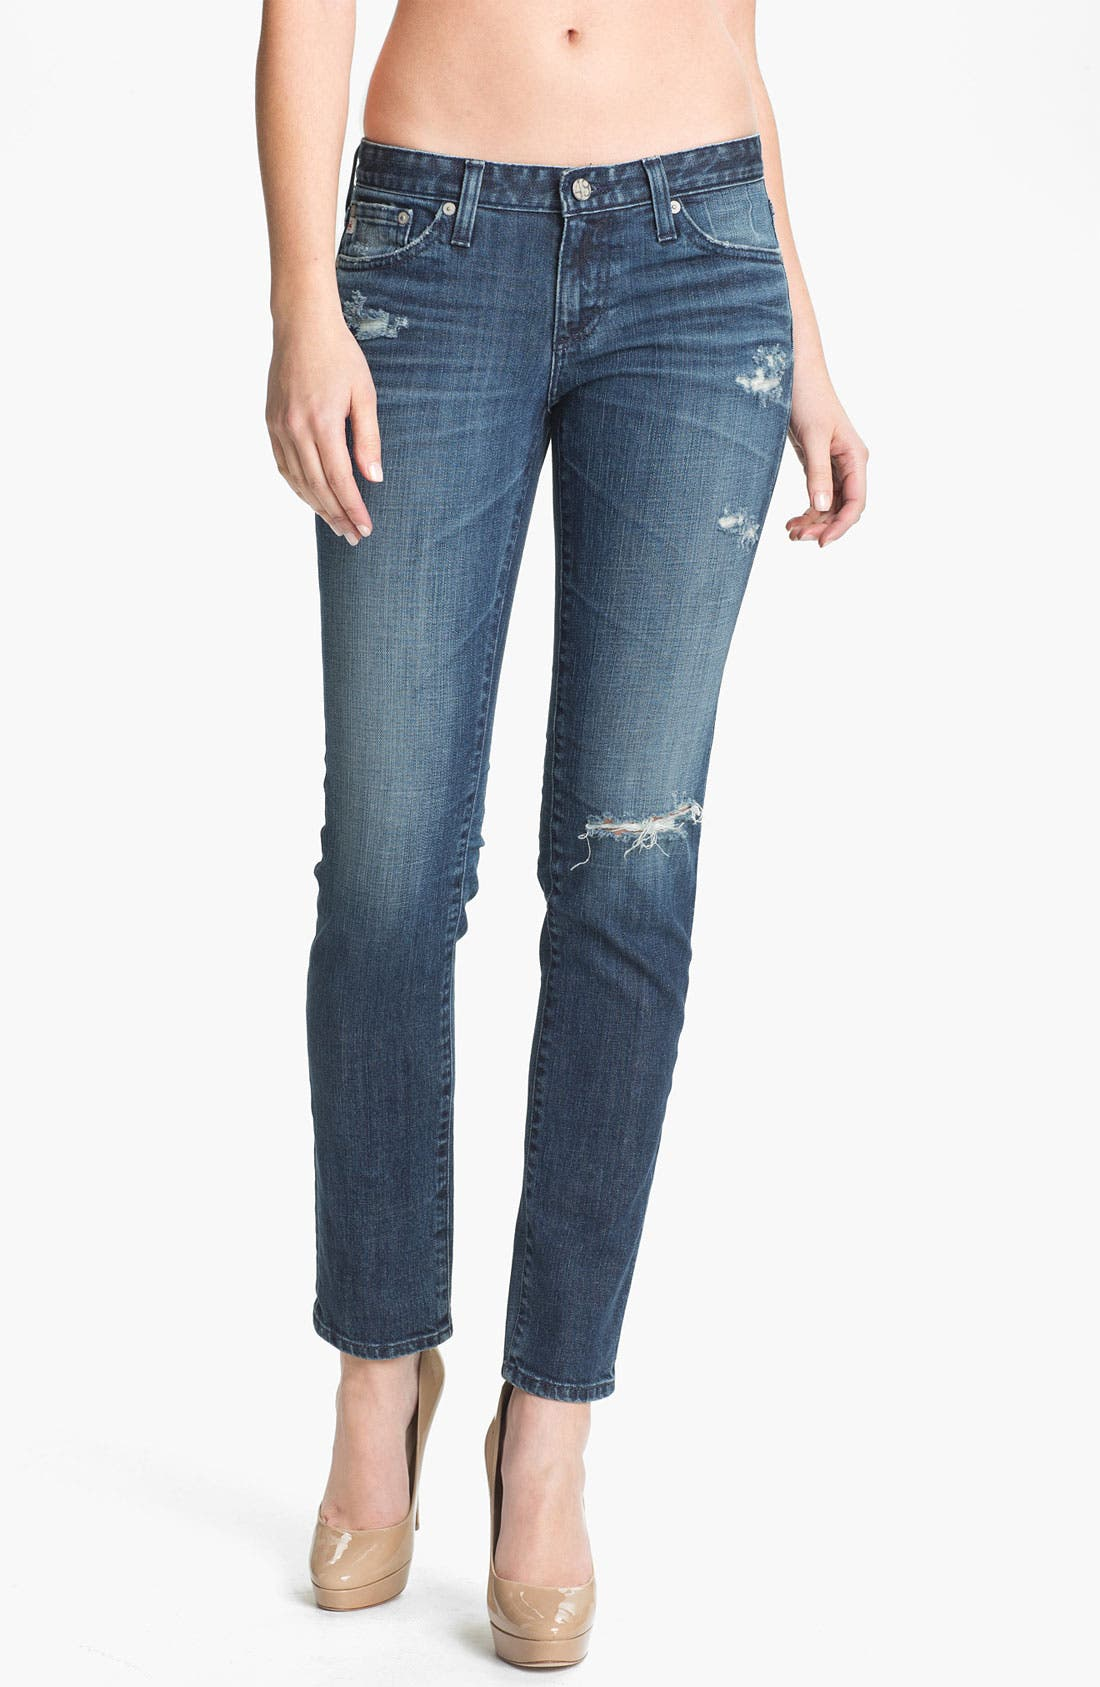 Alternate Image 1 Selected - AG Jeans 'The Stilt' Cigarette Leg Stretch Jeans (7 Year Destroy)